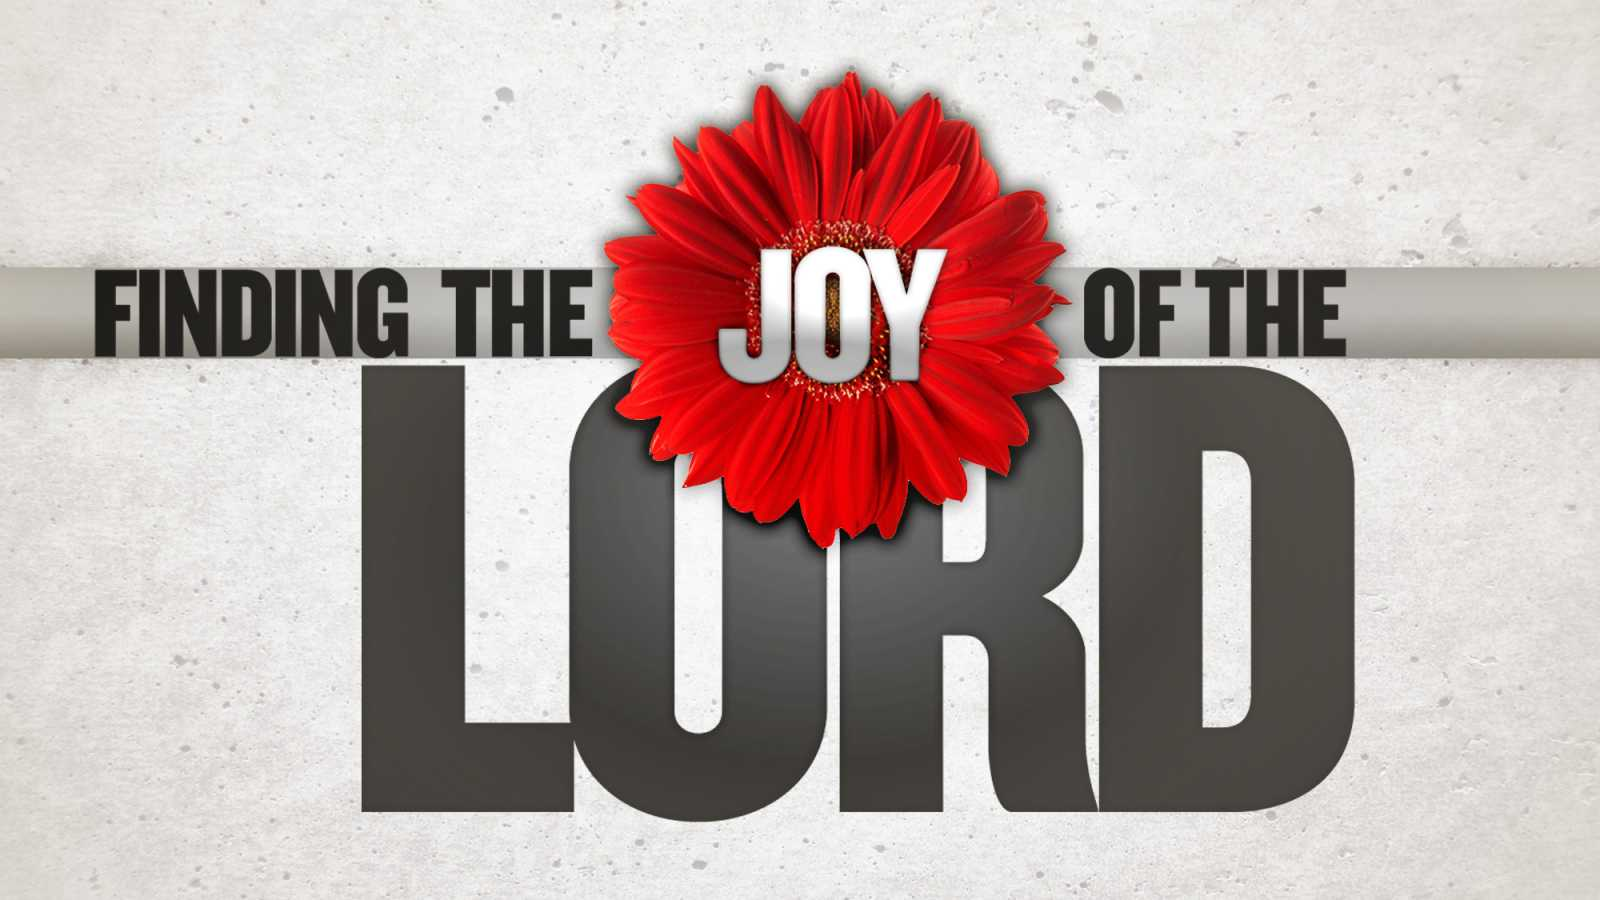 finding-the-joy-of-the-lord_wide_t_nv1